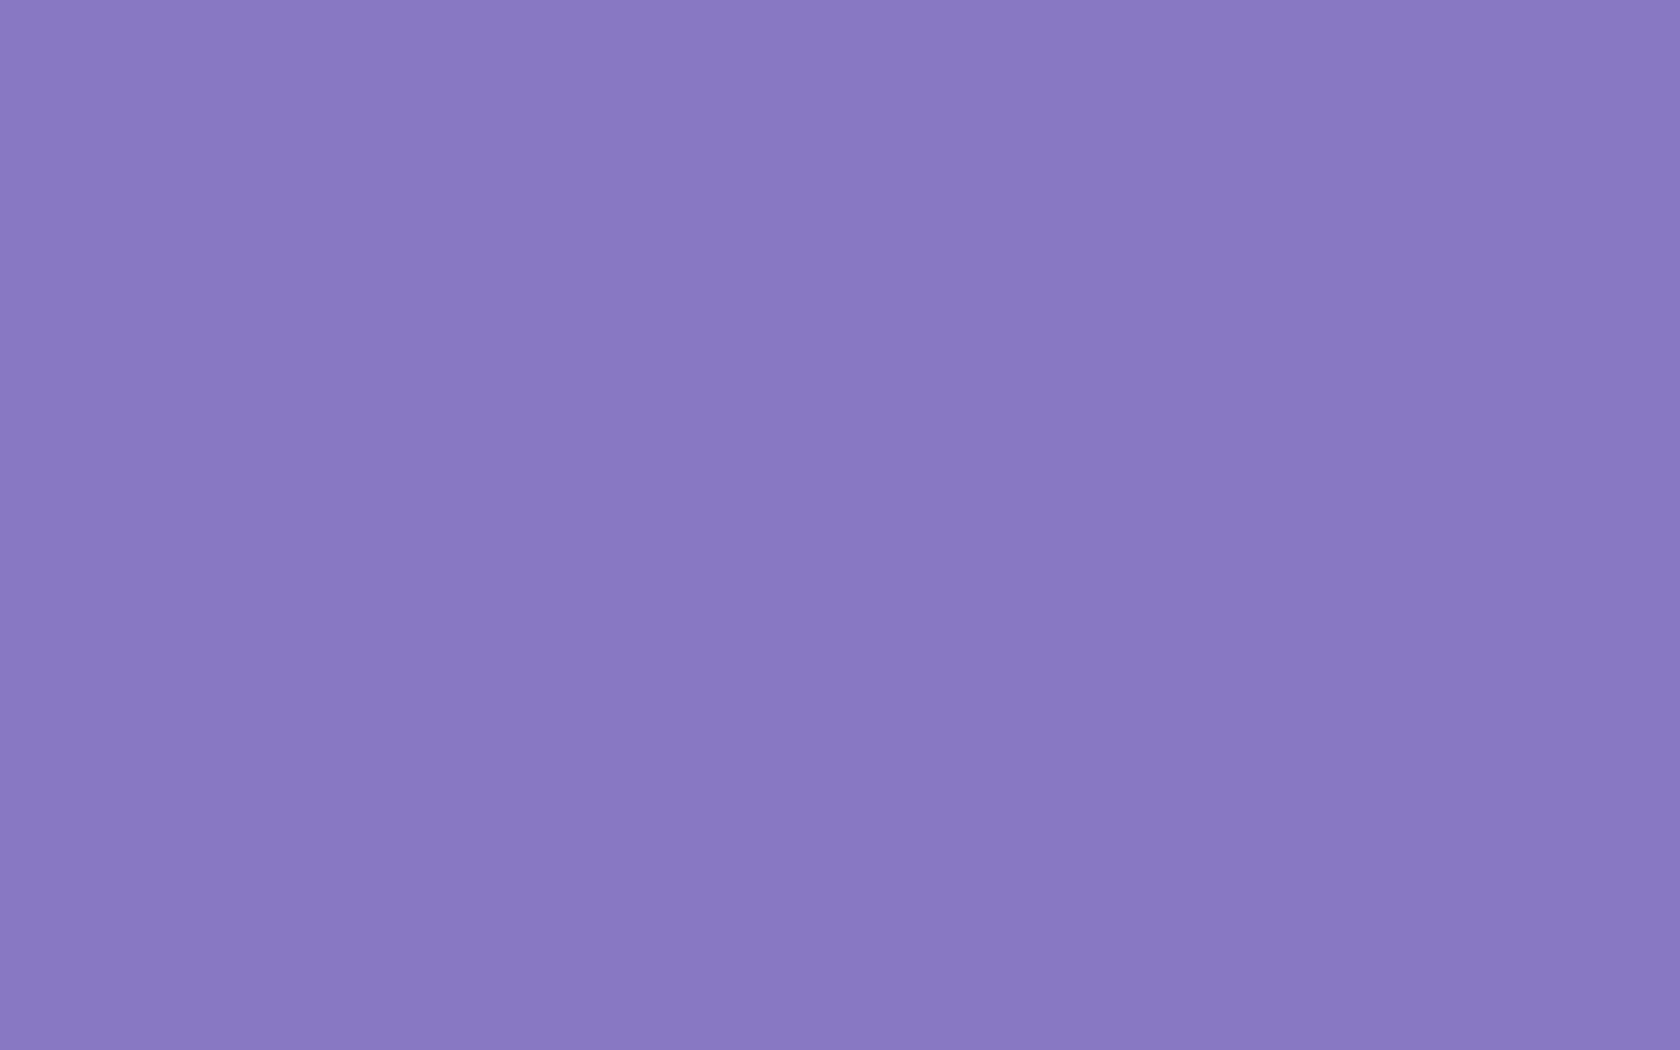 1680x1050 Ube Solid Color Background